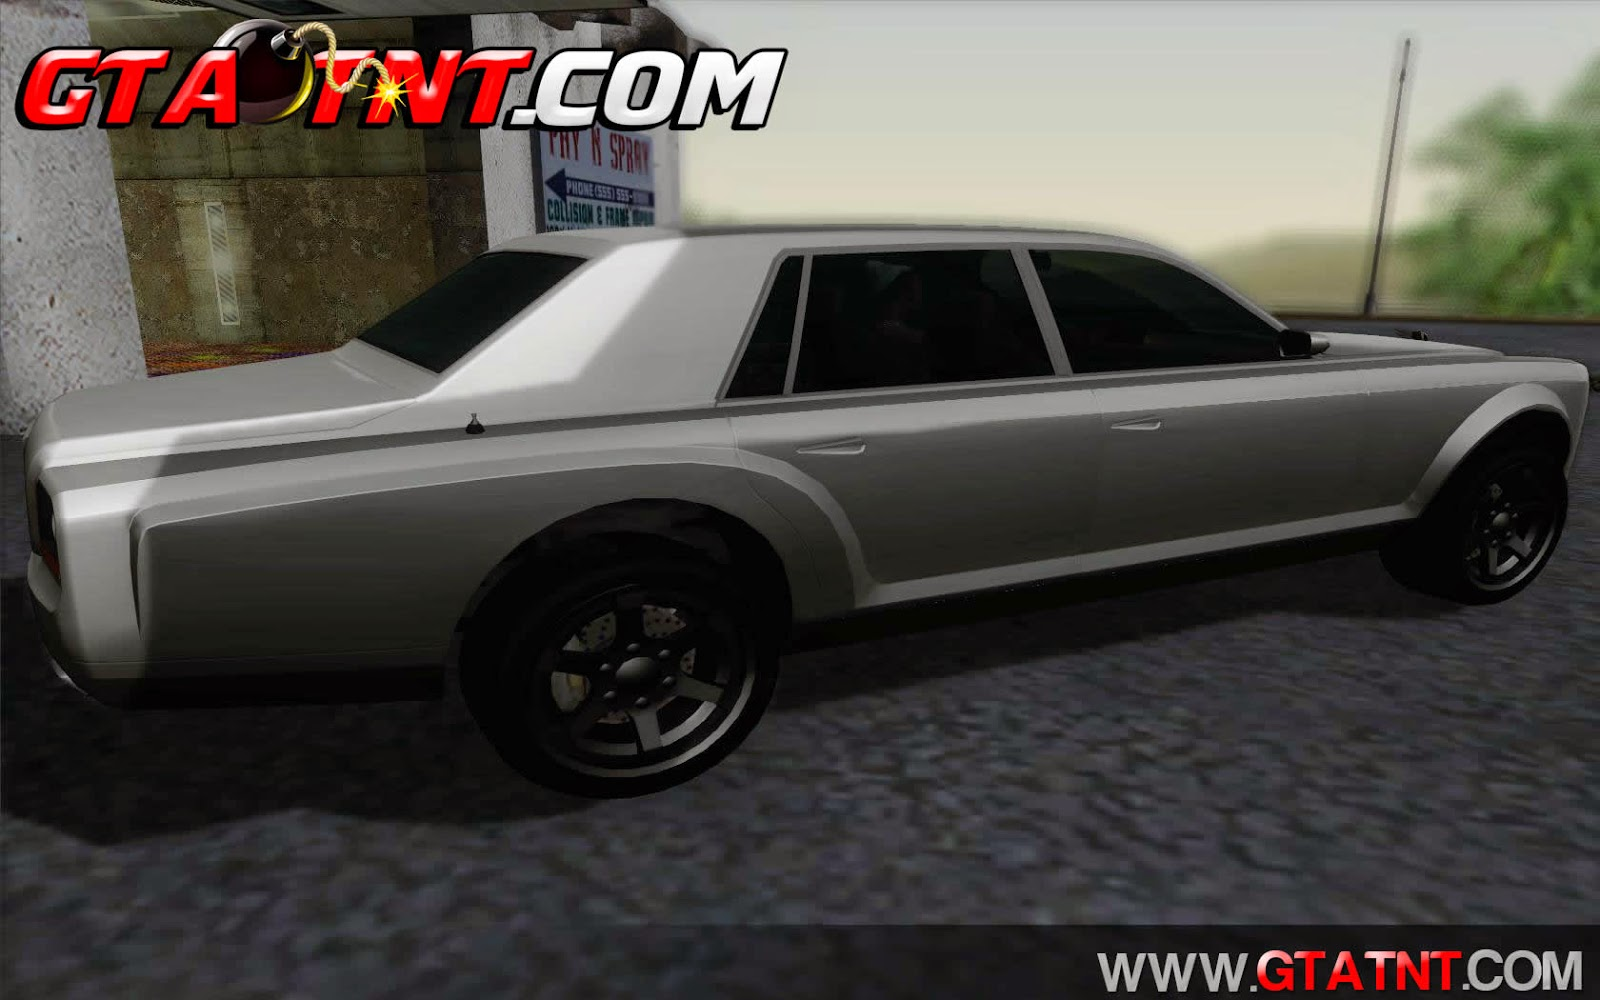 Enus Super Diamond Convertido do GTA V para GTA San Andreas